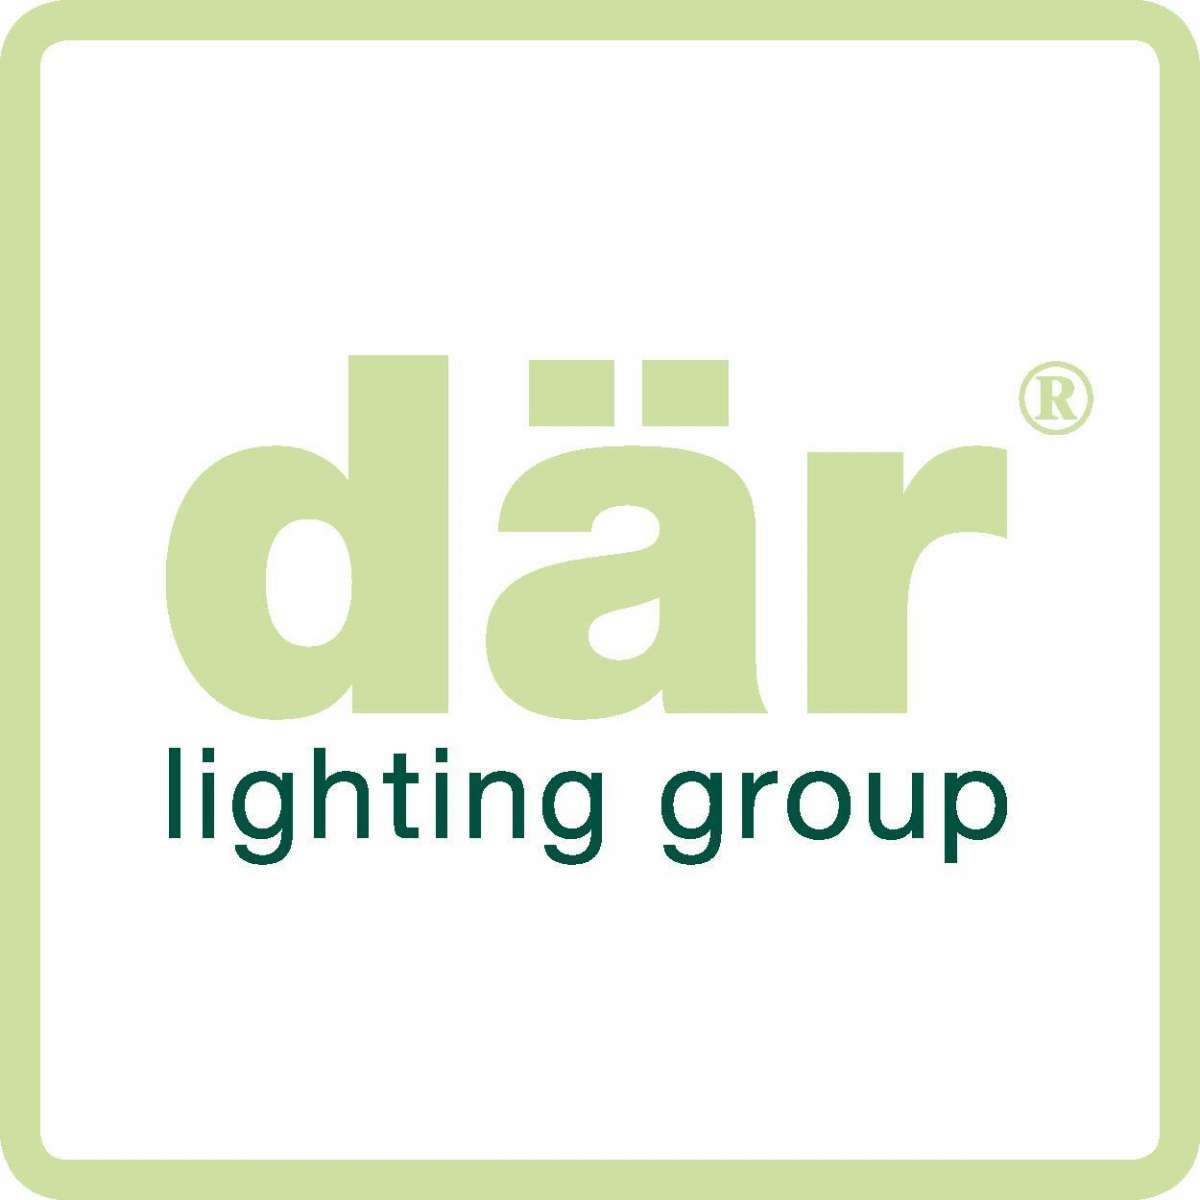 där lighting